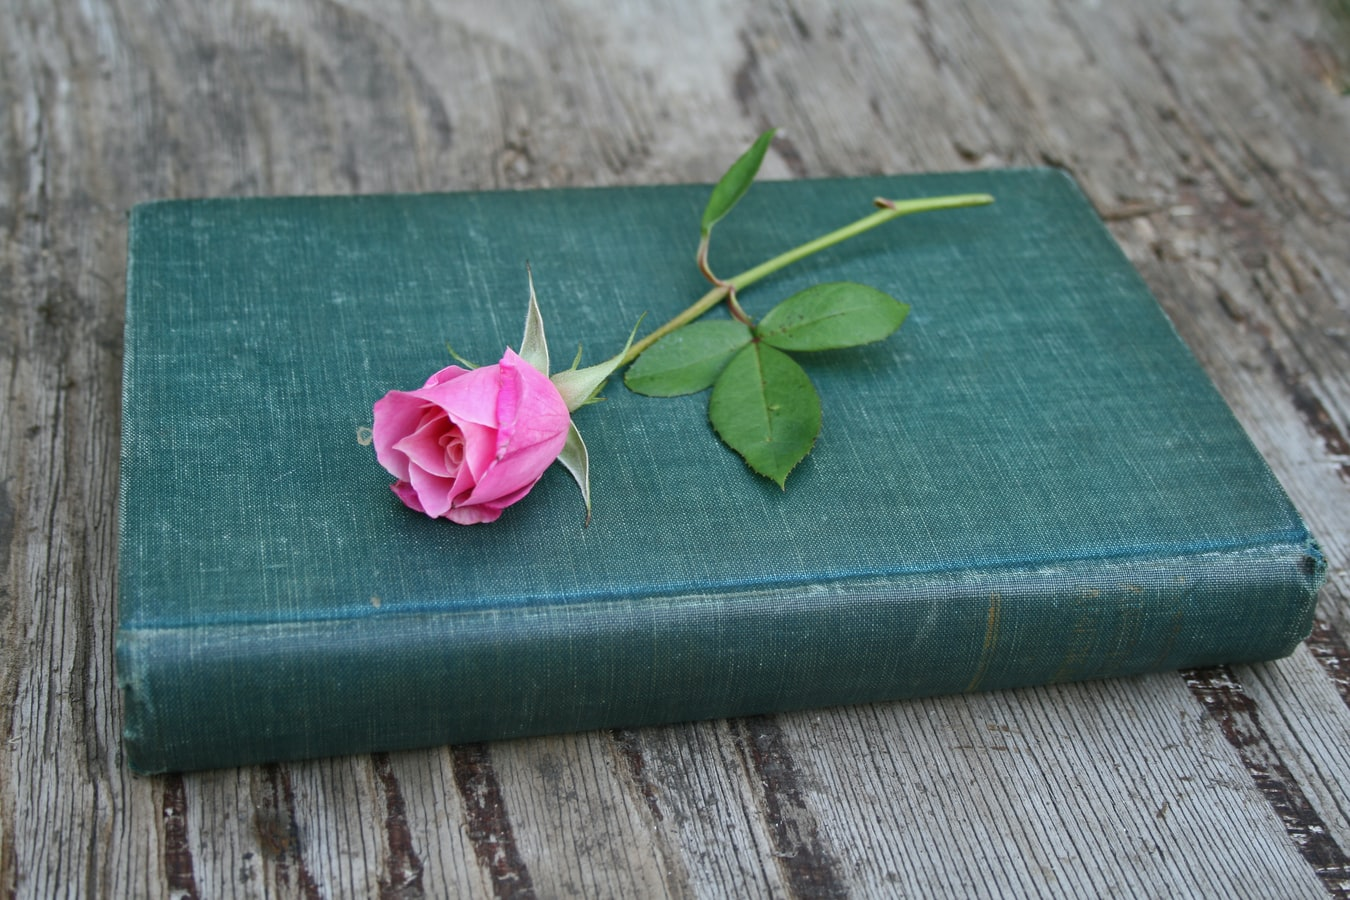 Book and a flower